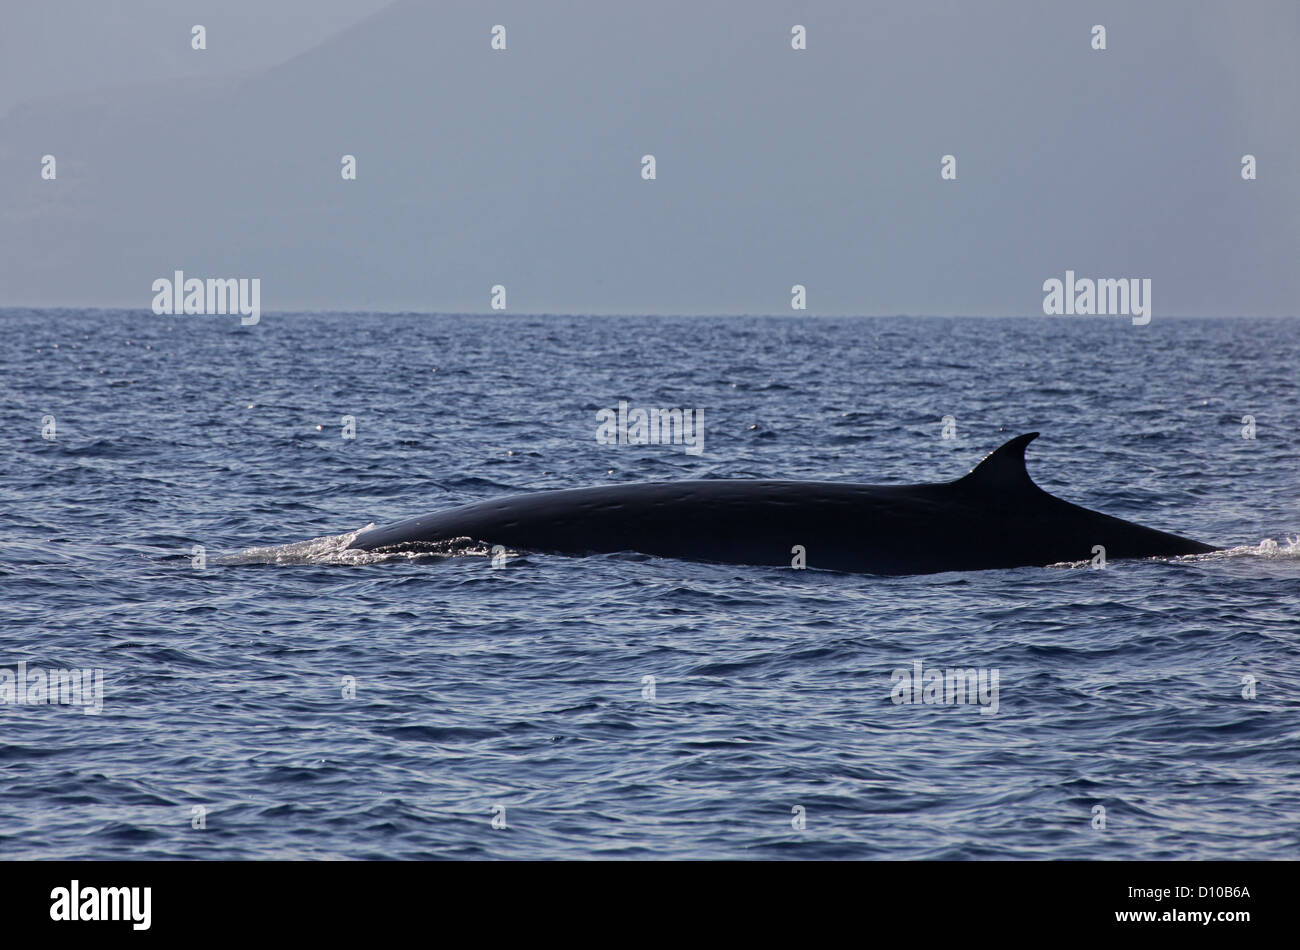 A large Bryde's whale surfaces off La Gomera, Canary Islands - Stock Image